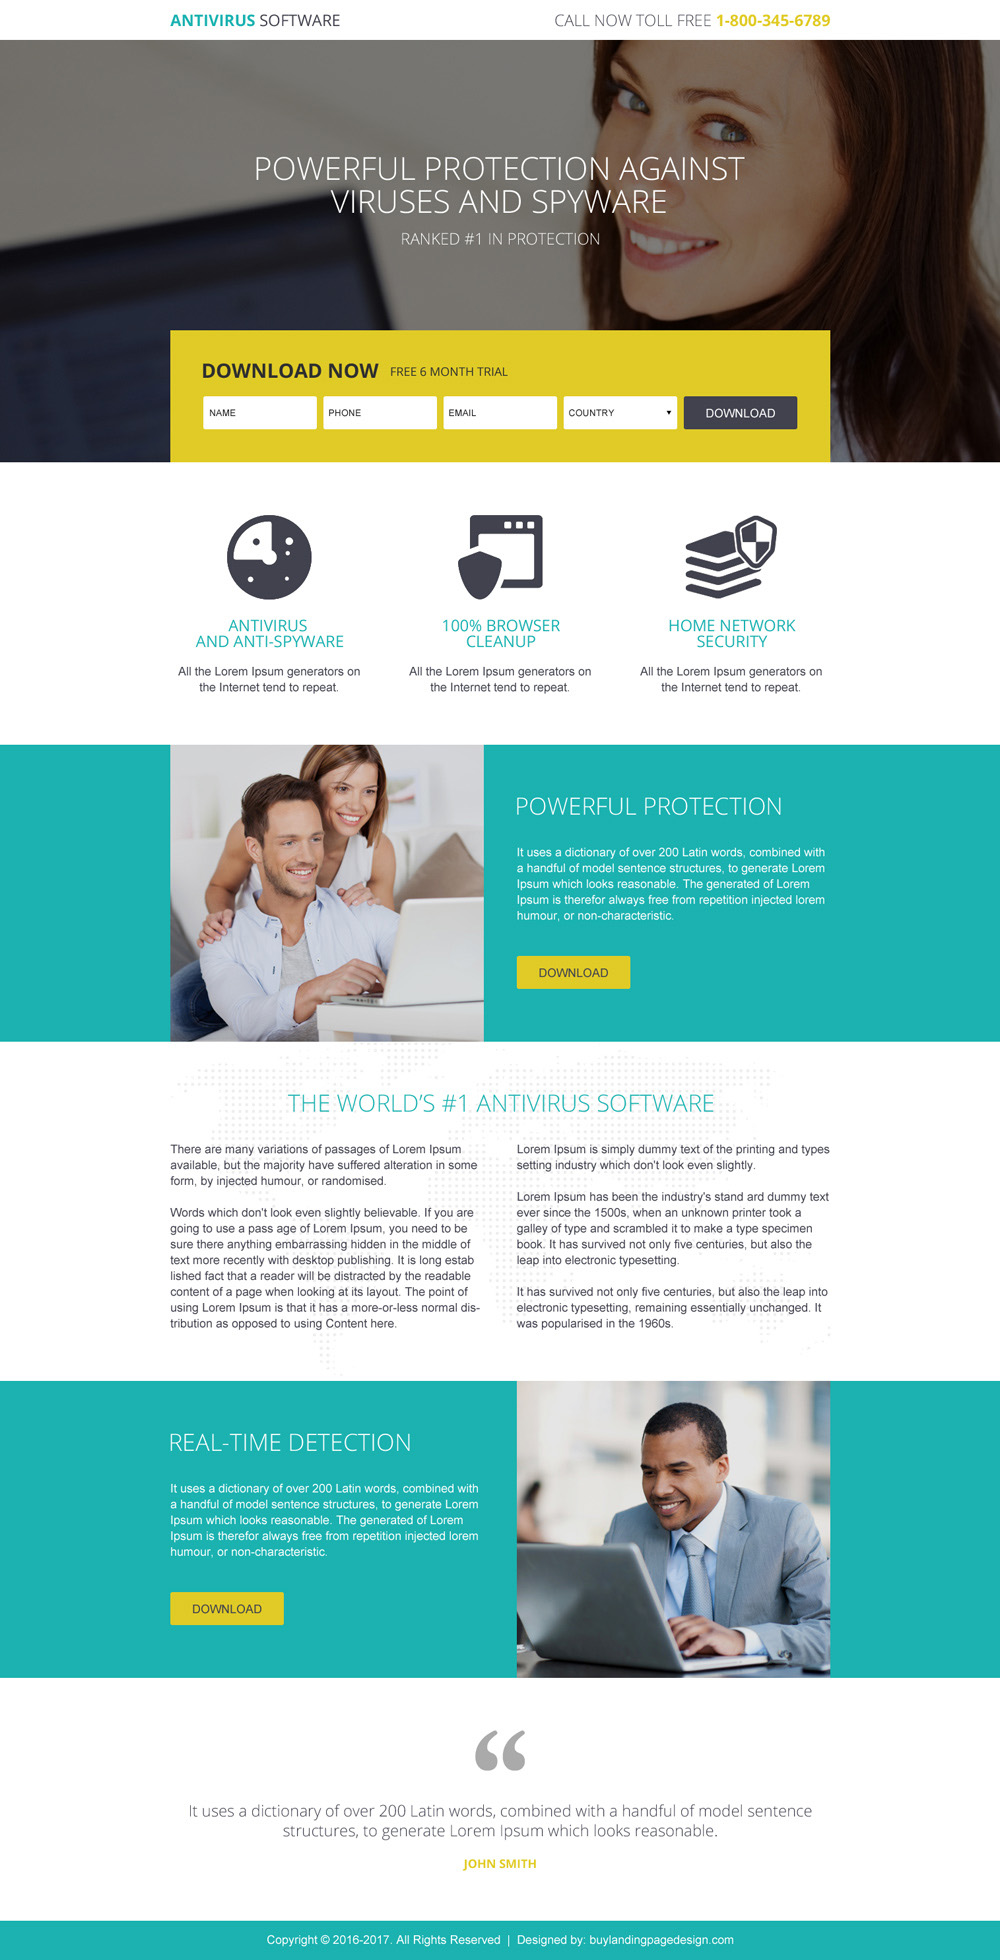 antivirus-software-trial-download-lead-capture-converting-landing-page-design-001